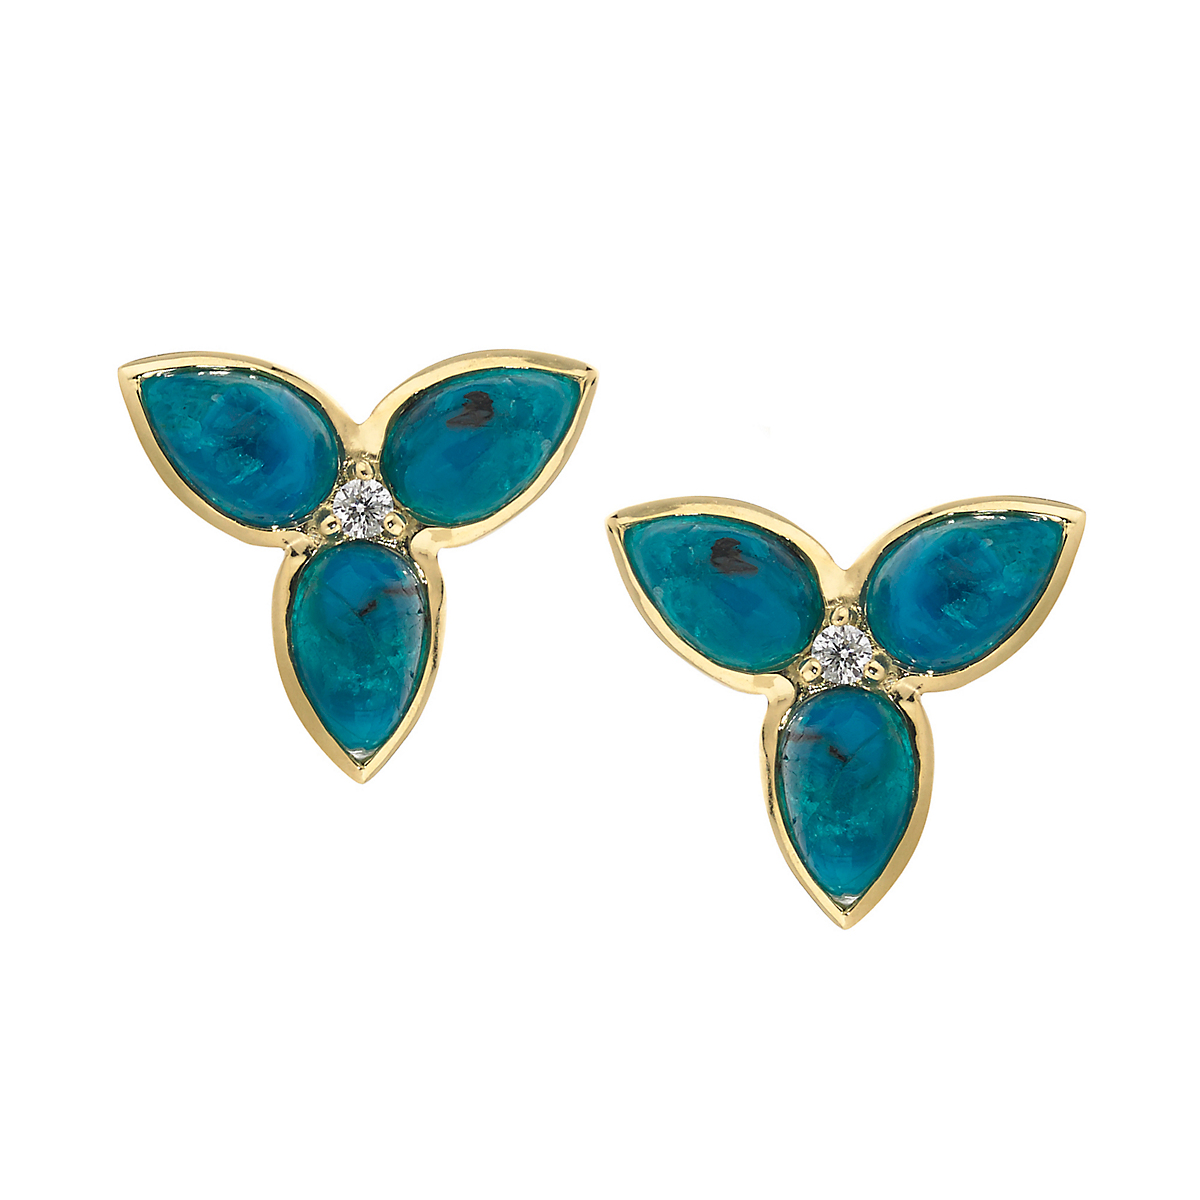 Elizabeth Showers Chrysacolla & Diamond Mini Mariposa Earrings